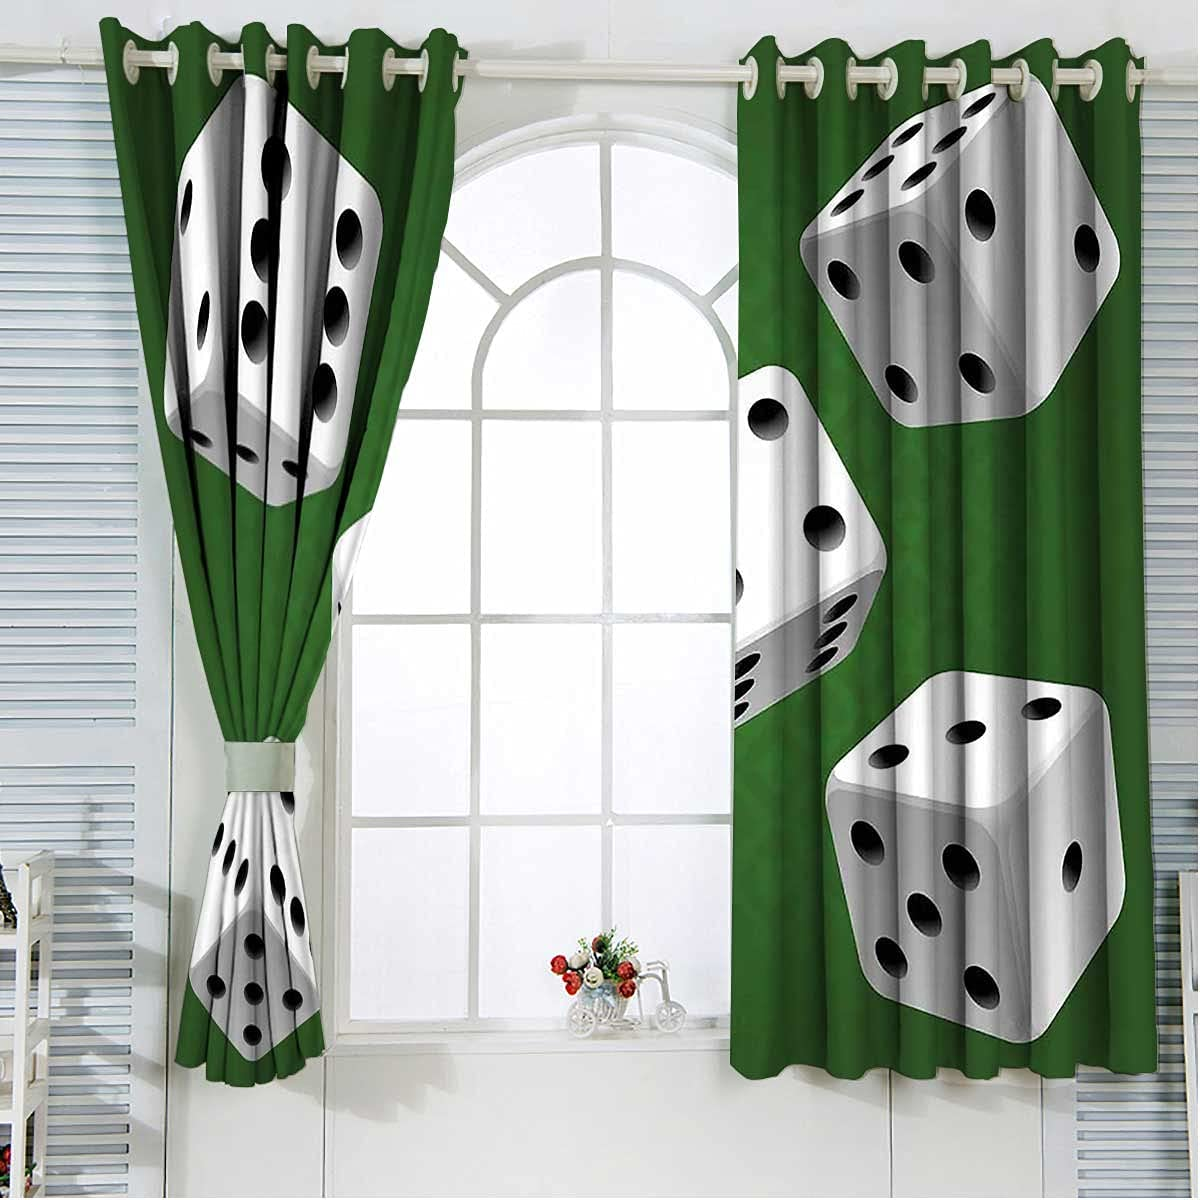 Kitchen Window Curtains Max 84% OFF 63 Inches Se Casino Dice Rolling Length 1 year warranty